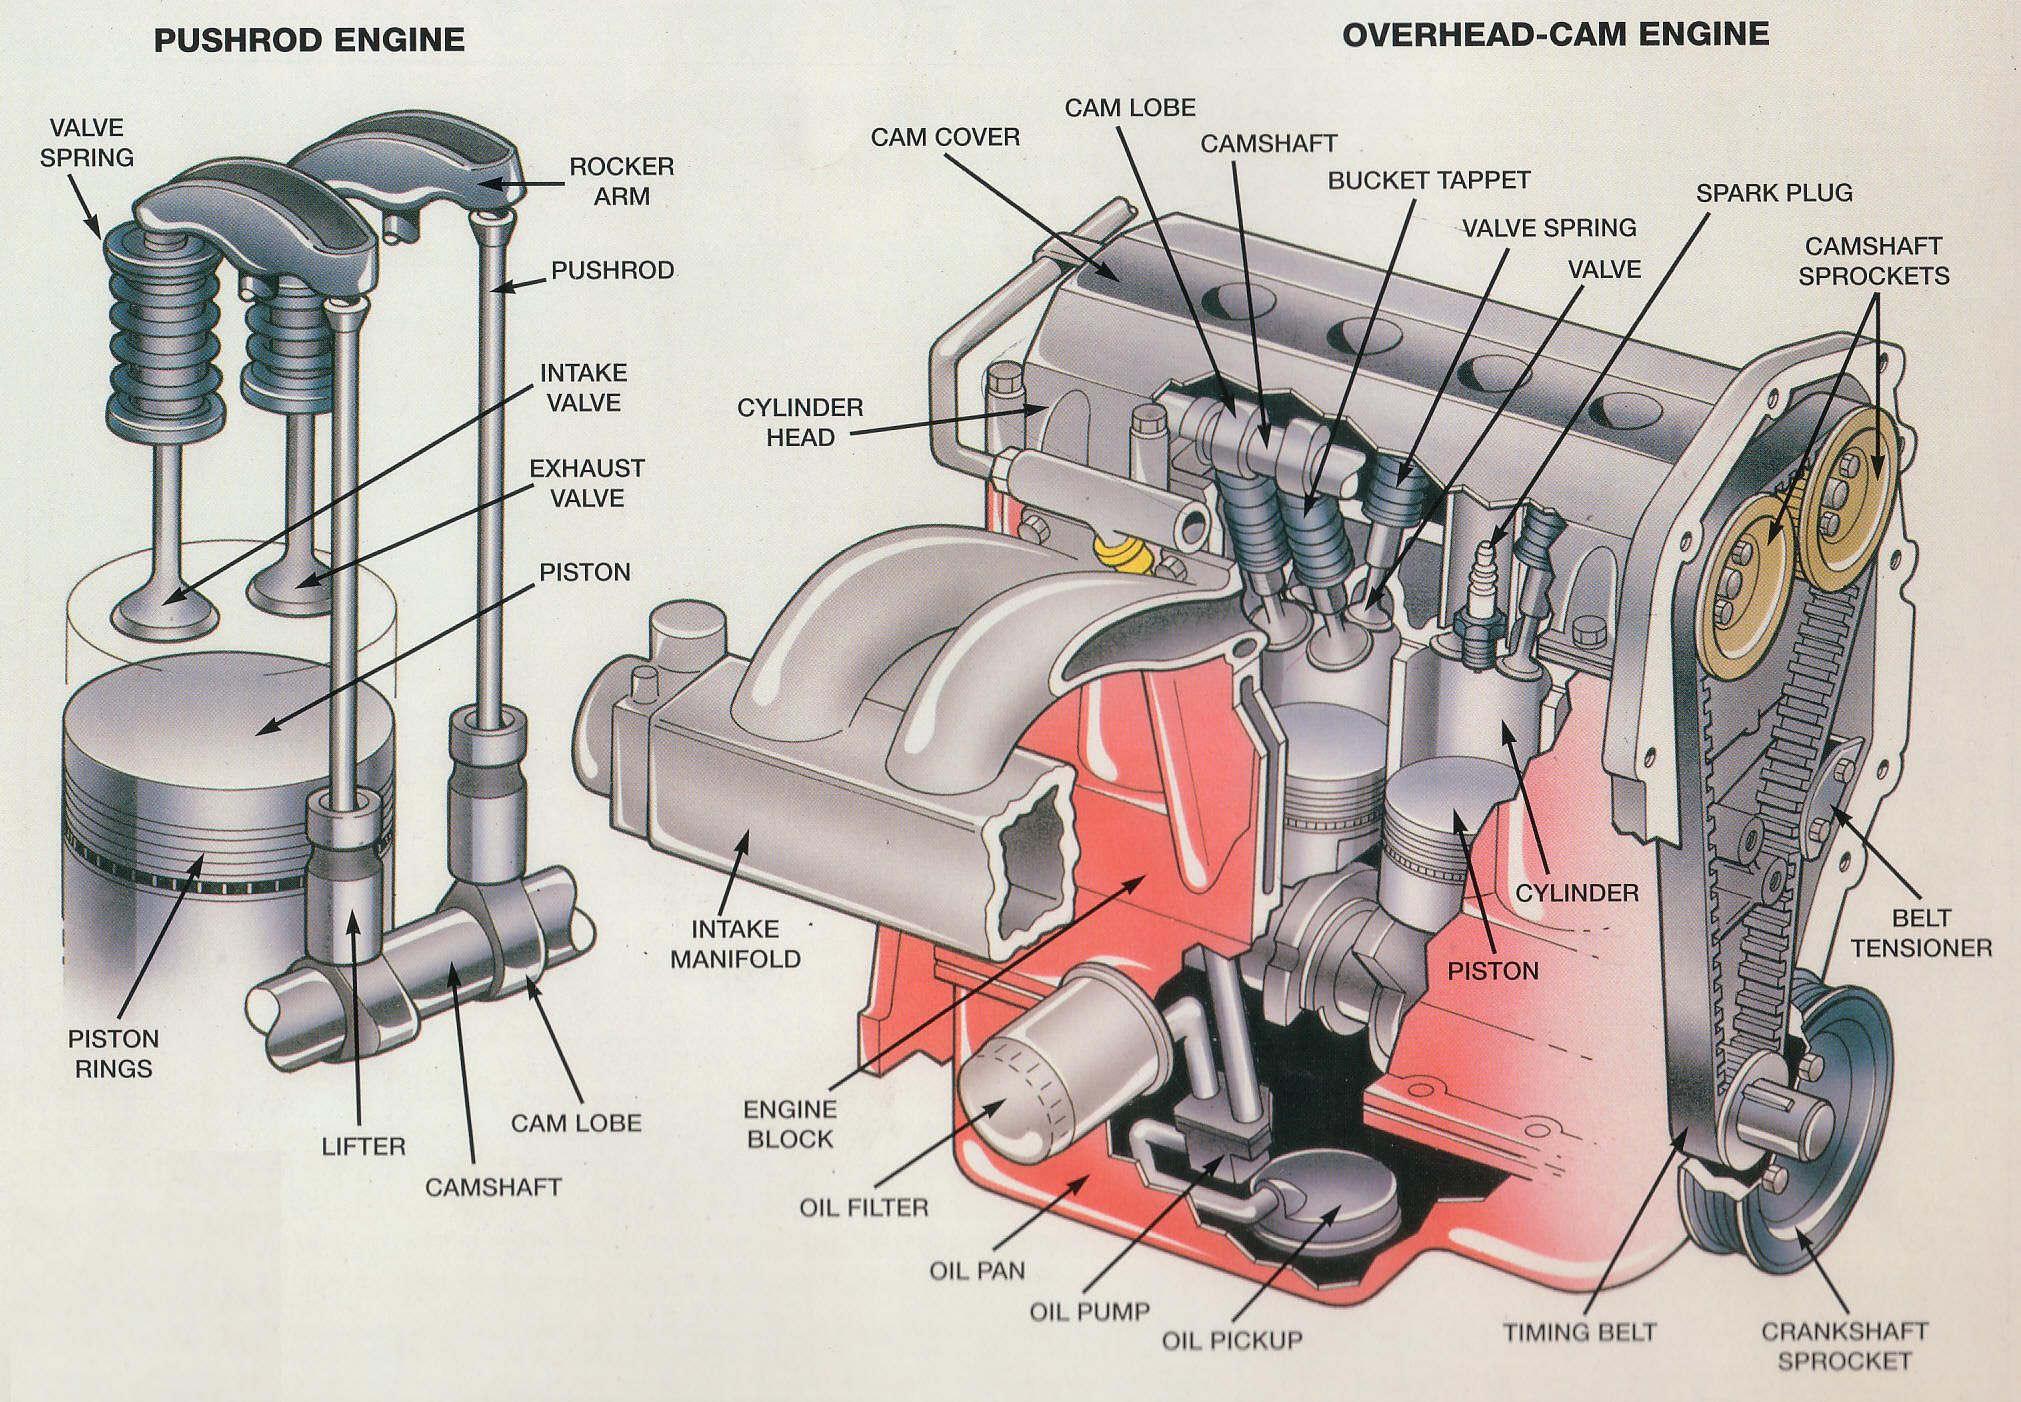 Internal Combustion Engine Exploded View Google Search Engineering Combustion Engine Mechanic Engineering